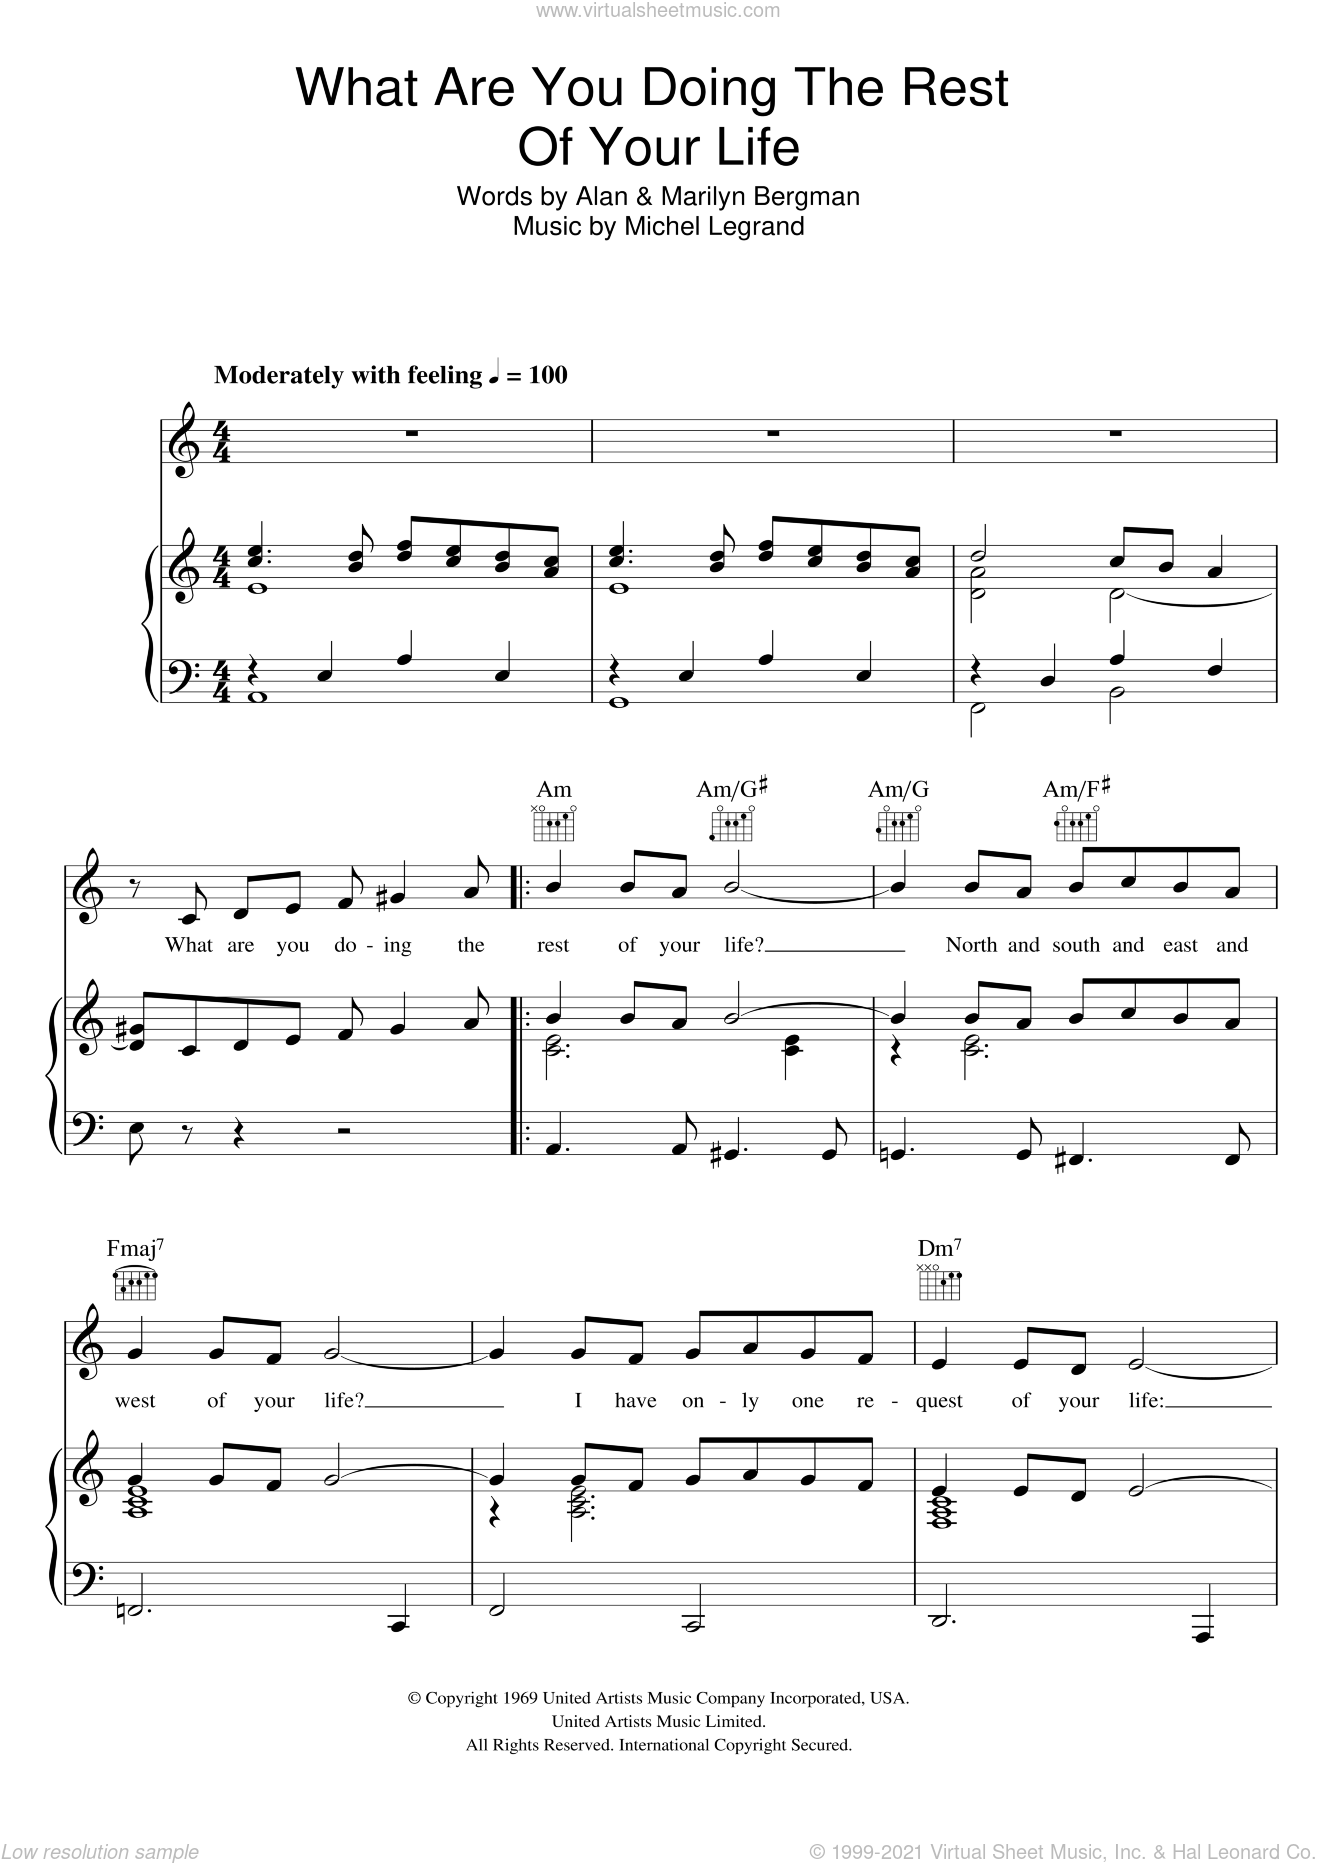 What Are You Doing The Rest Of Your Life sheet music for voice, piano or guitar by Michel LeGrand, Alan, Alan and Marilyn Bergman and Michel Legrand, Alan Bergman and Marilyn Bergman, intermediate skill level